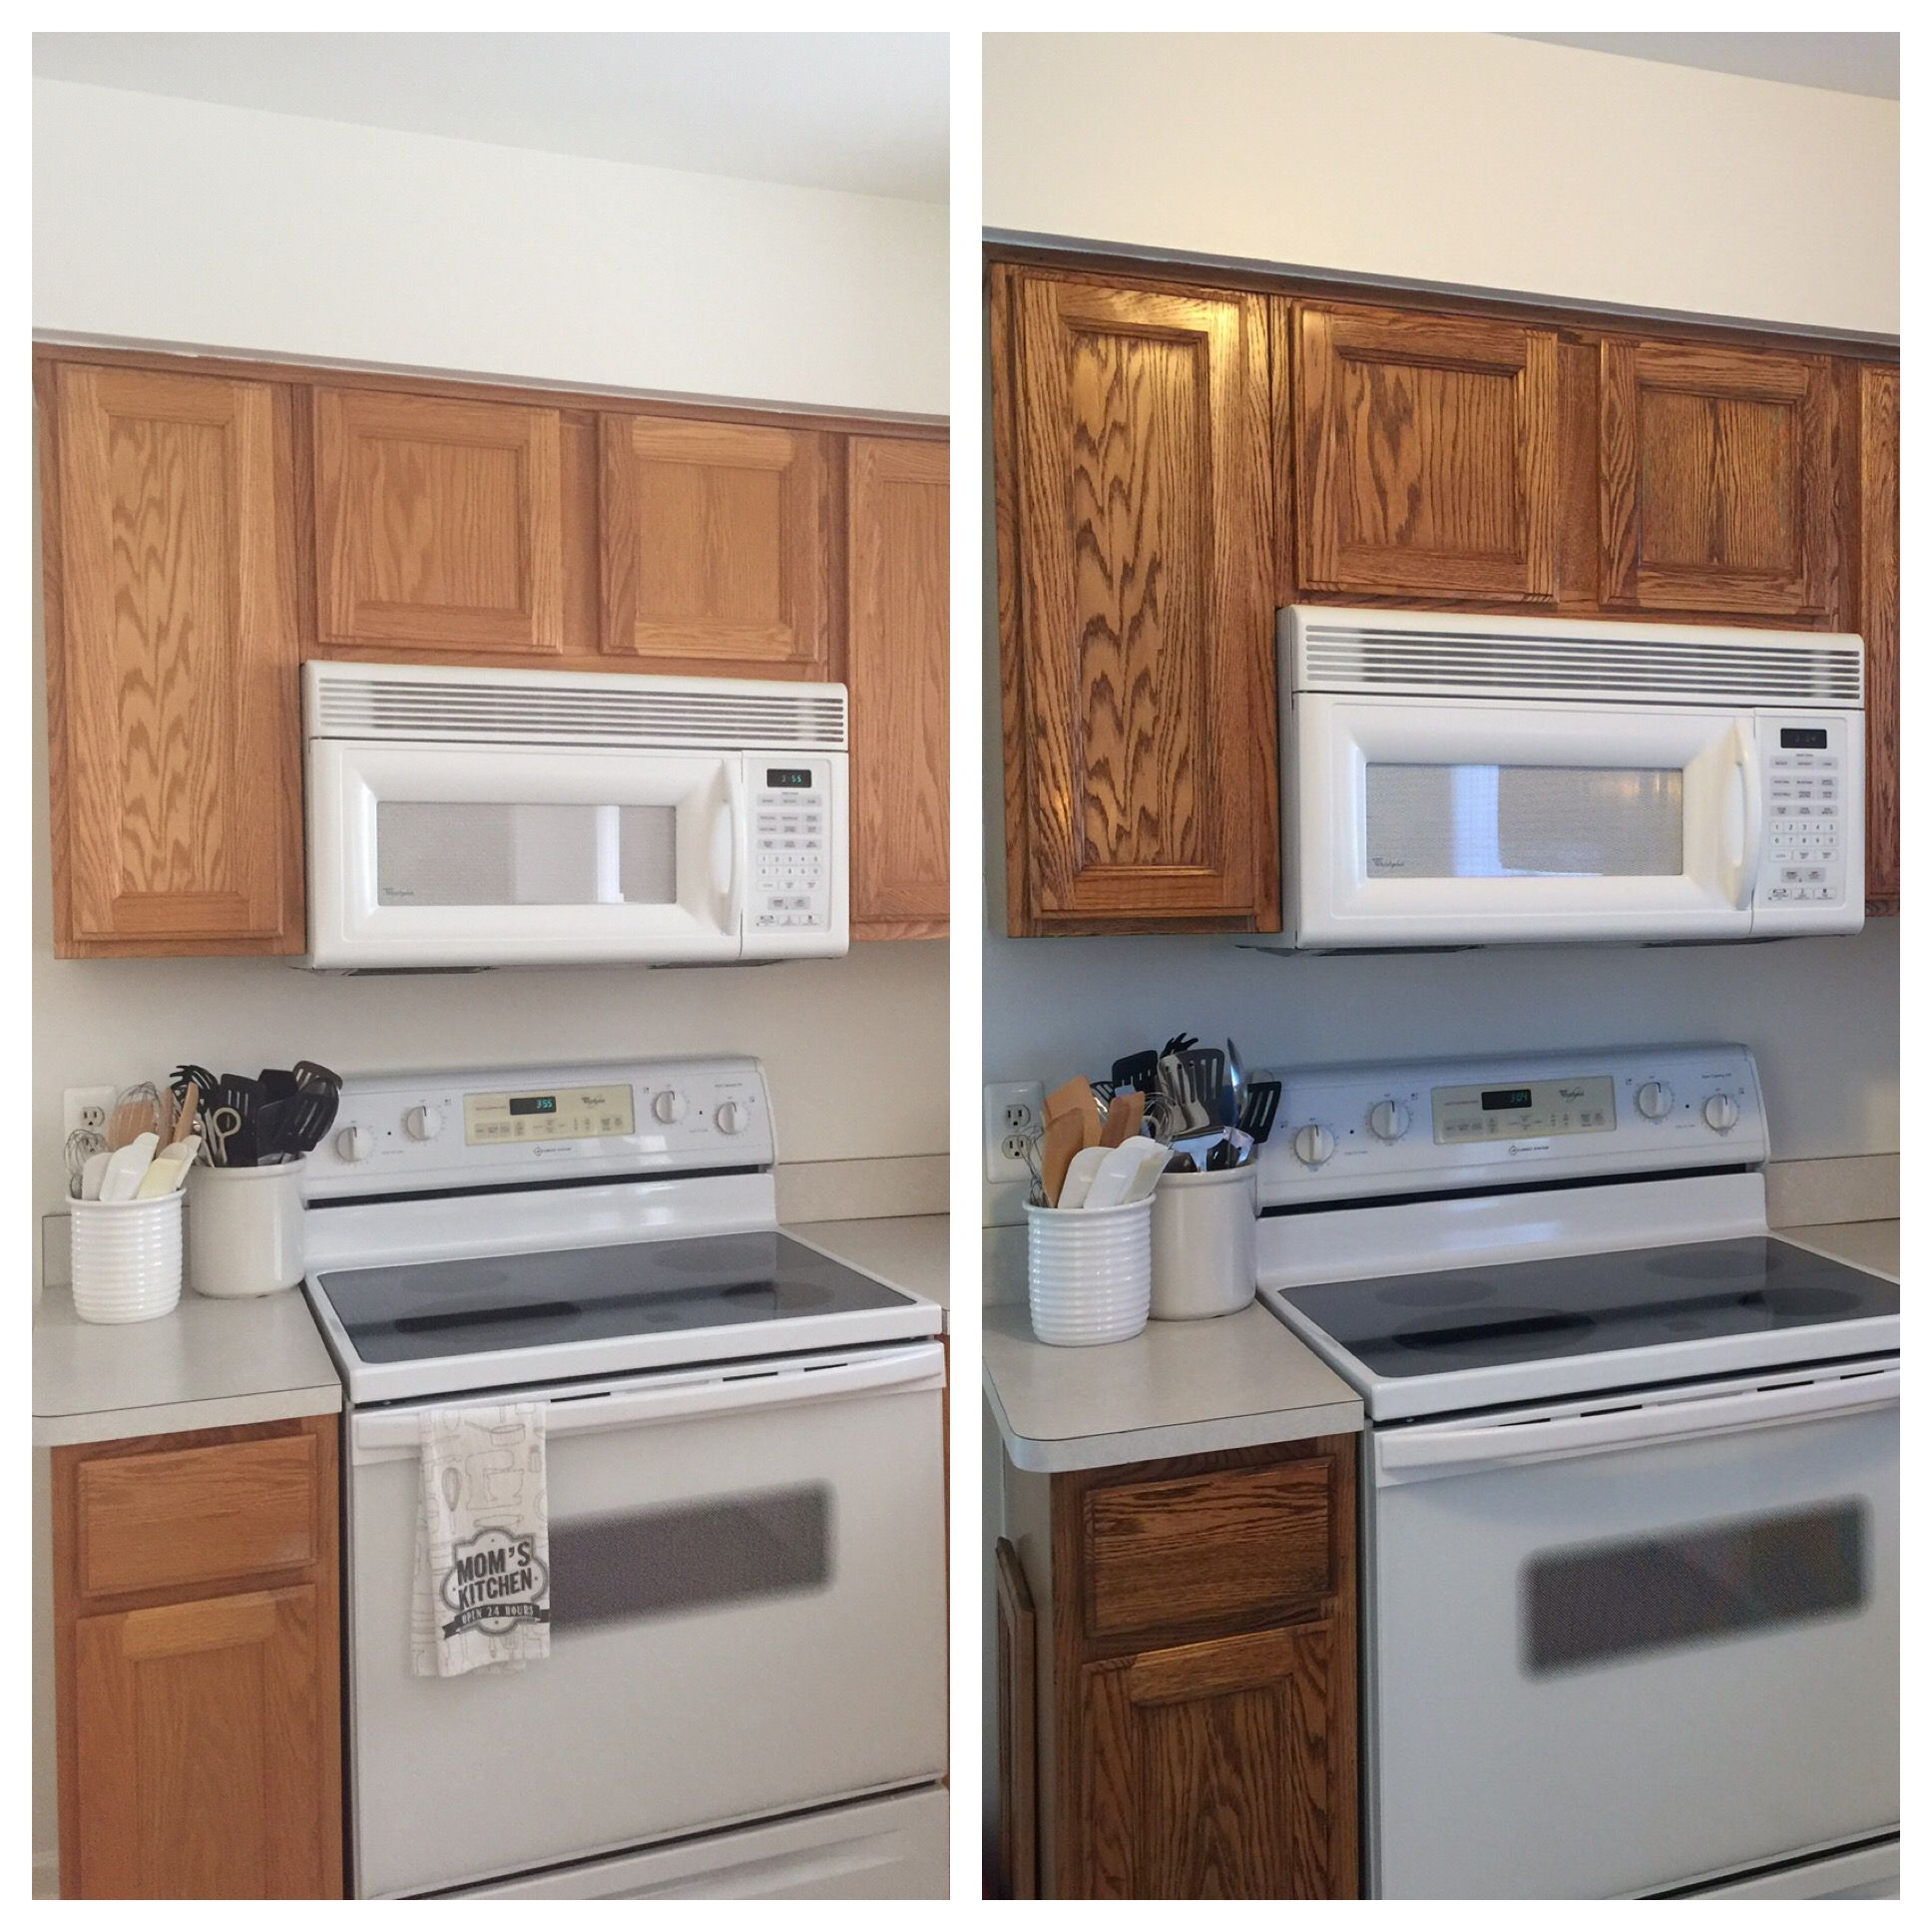 Before After 20 Year Old Oak Cabinets Treated With Briwax Tudor Brown Soapy Water Wipe Down Of Cabine Oak Kitchen Cabinets Old Kitchen Cabinets Oak Kitchen